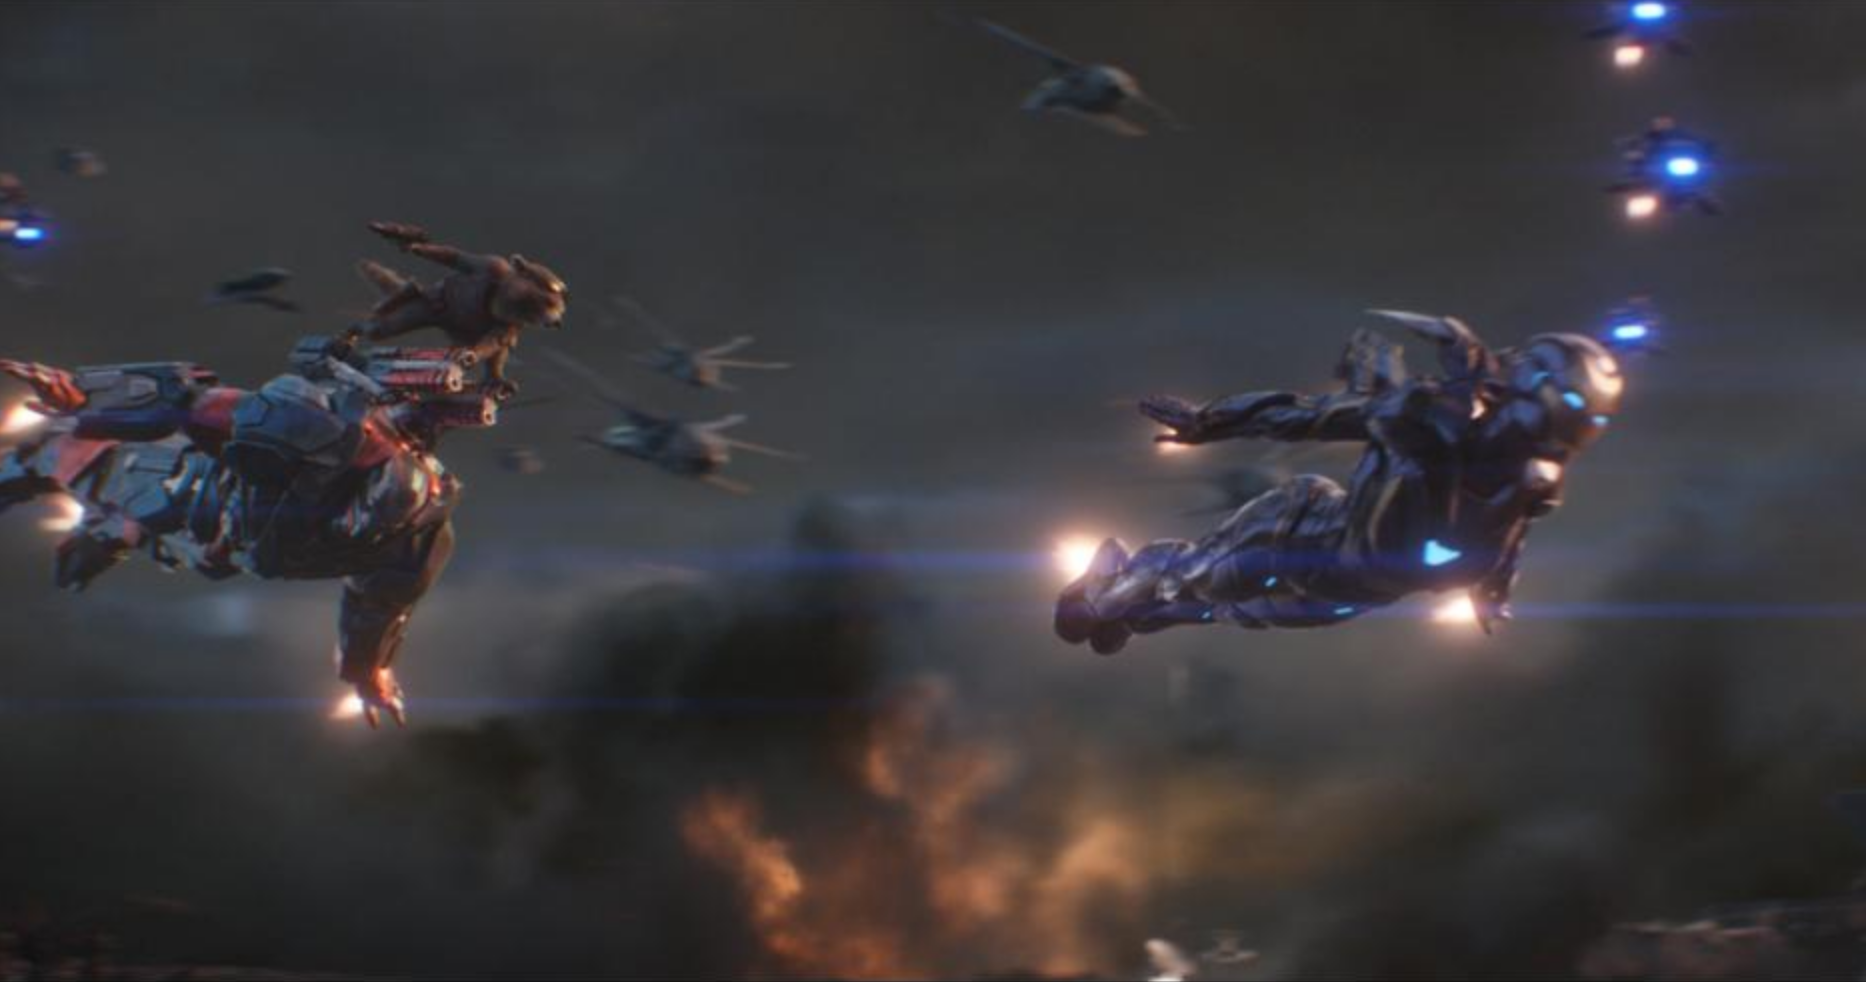 Avengers Endgame Hd Ending Images Highlight The Big Battle